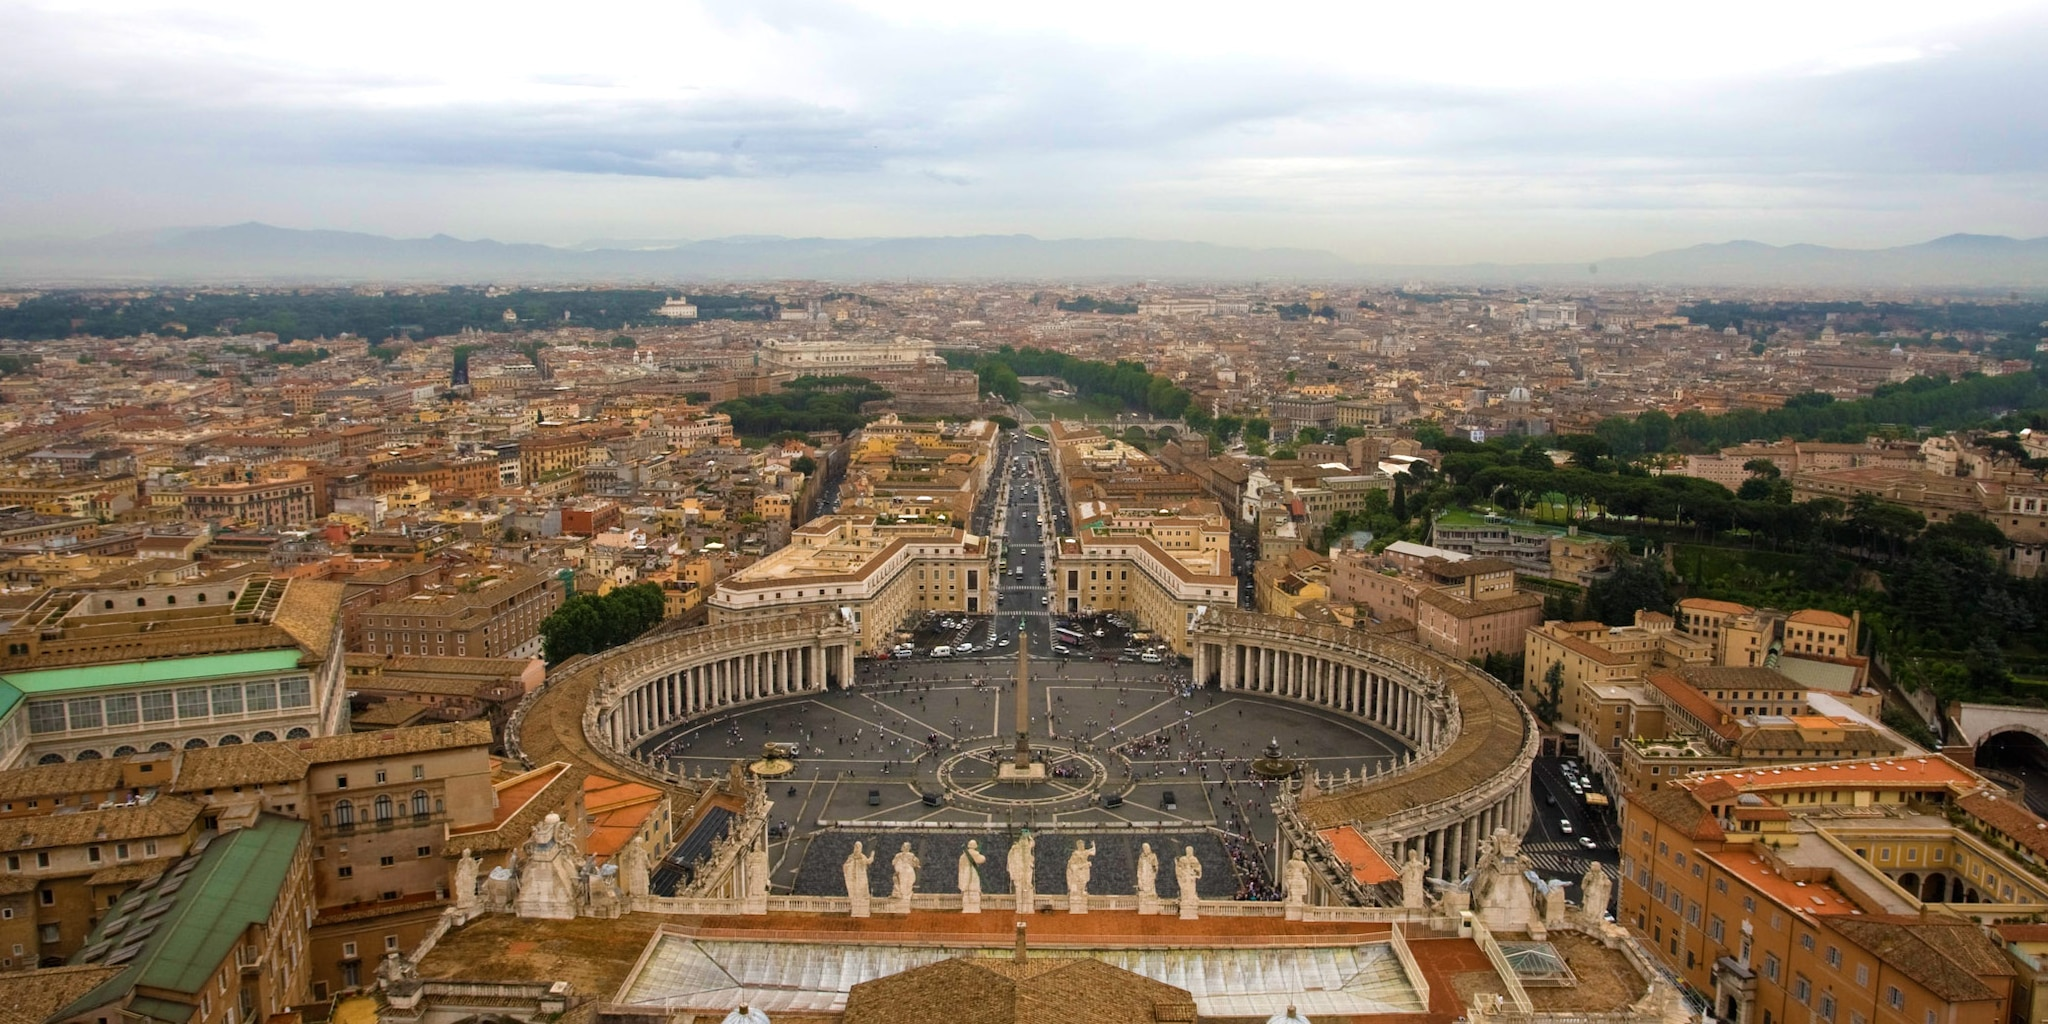 Vatican City surrounded by the city of Rome and distant mountains